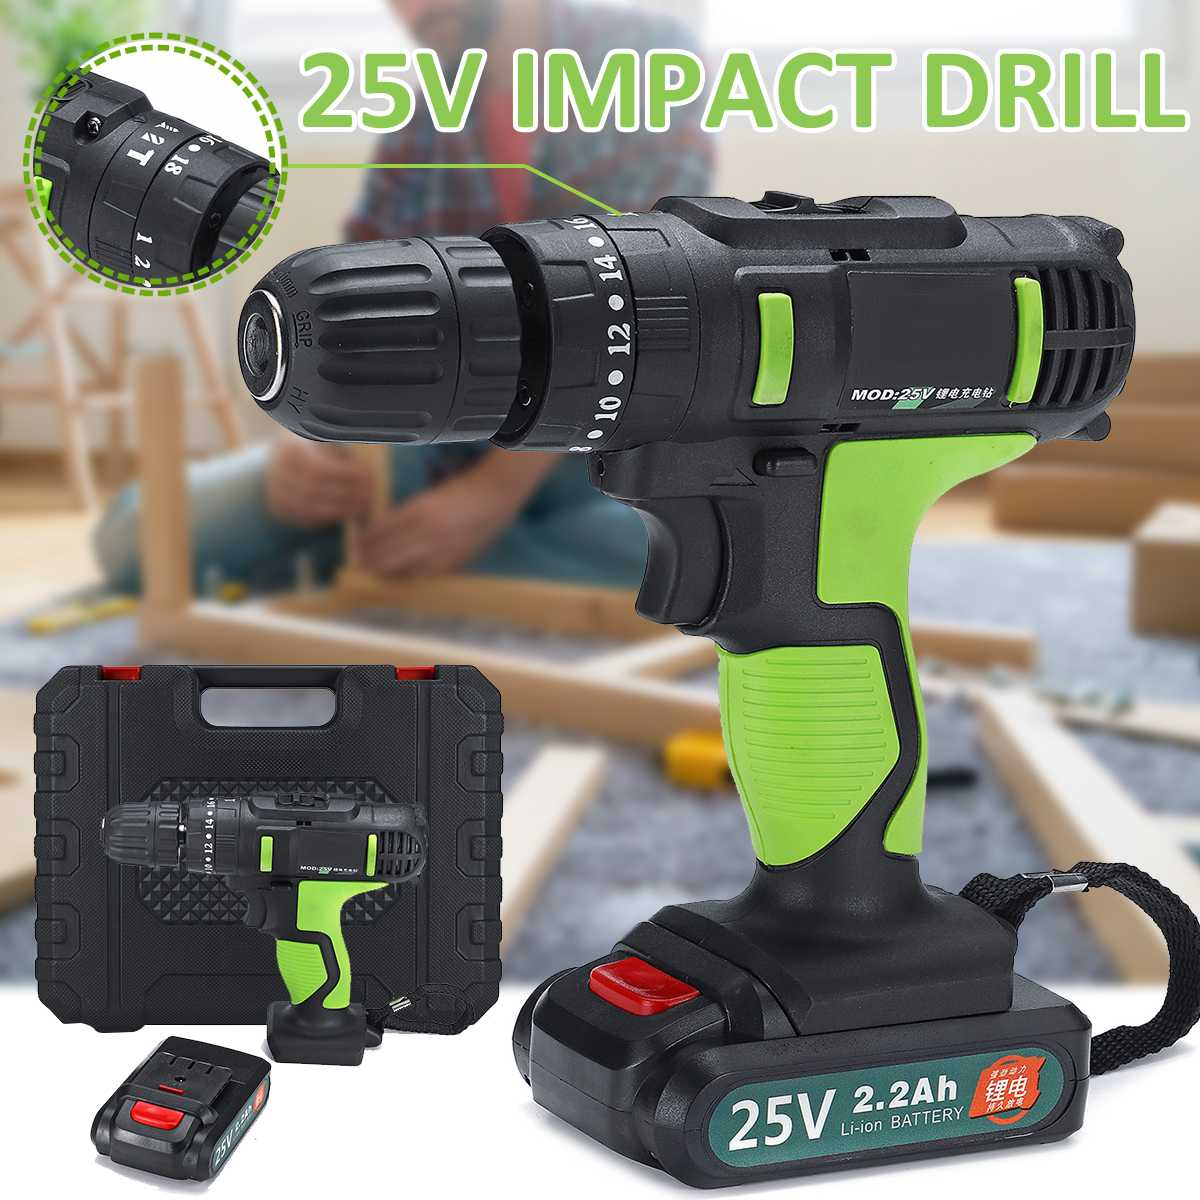 цена на 25V 2-Speed Cordless Electric Drill 220v Impact Drills 3/8 Driver Rechargable Drill Screwdriver 1 or 2 Batteries Power Tool